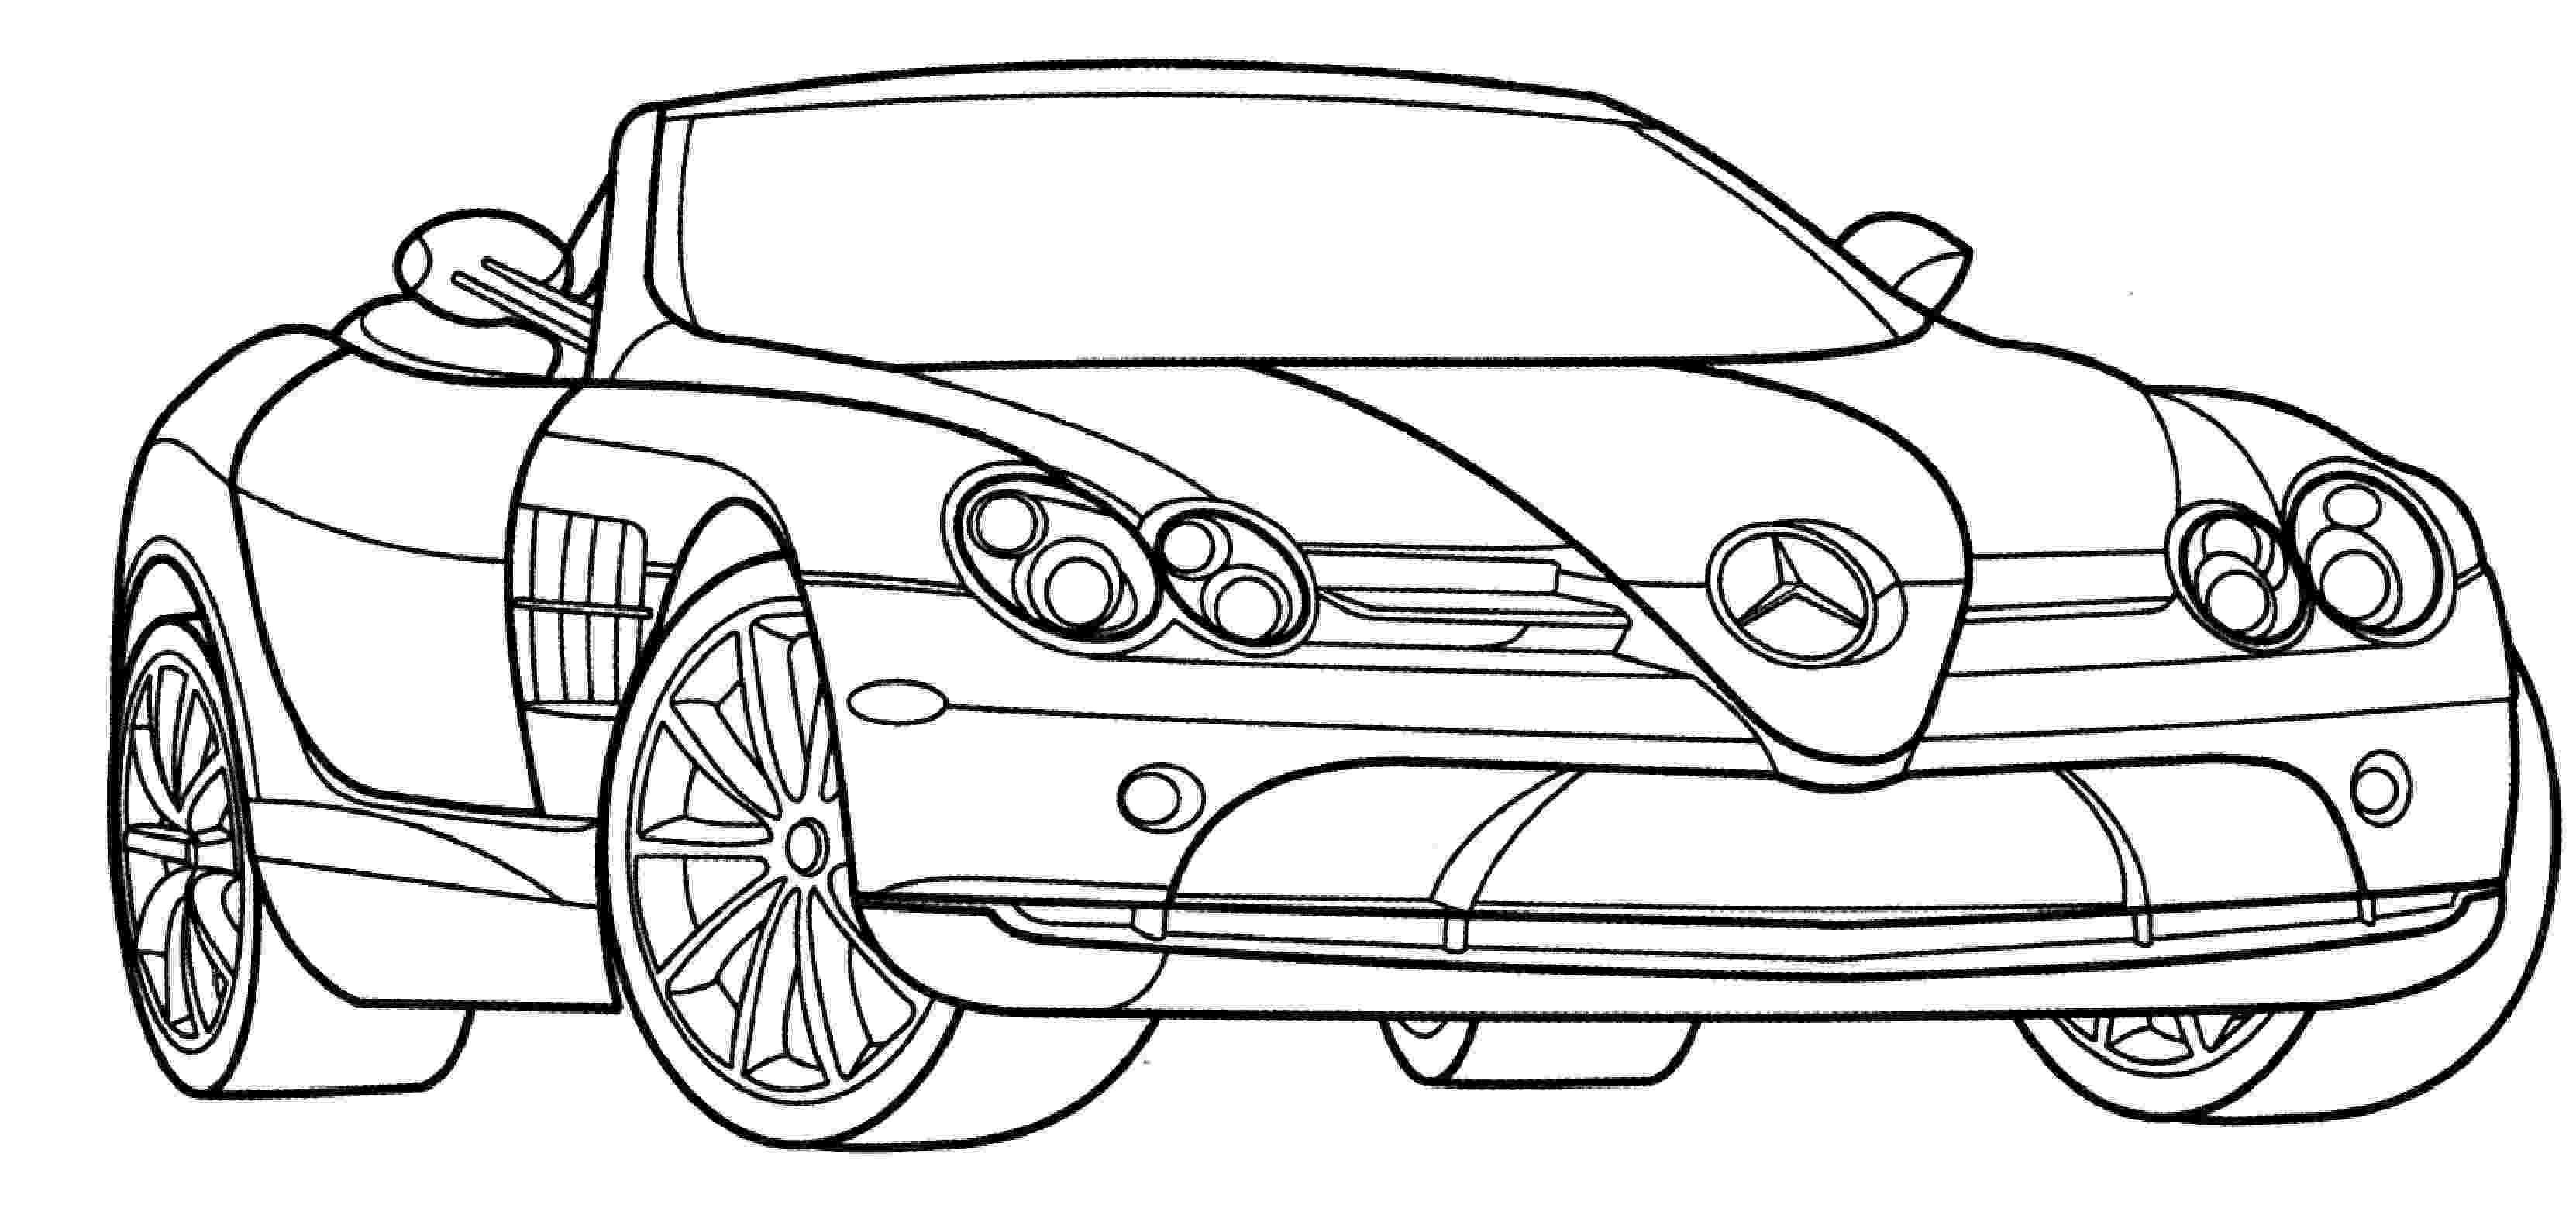 colouring pages for adults cars sports cars coloring pages bing images cars coloring colouring cars pages for adults